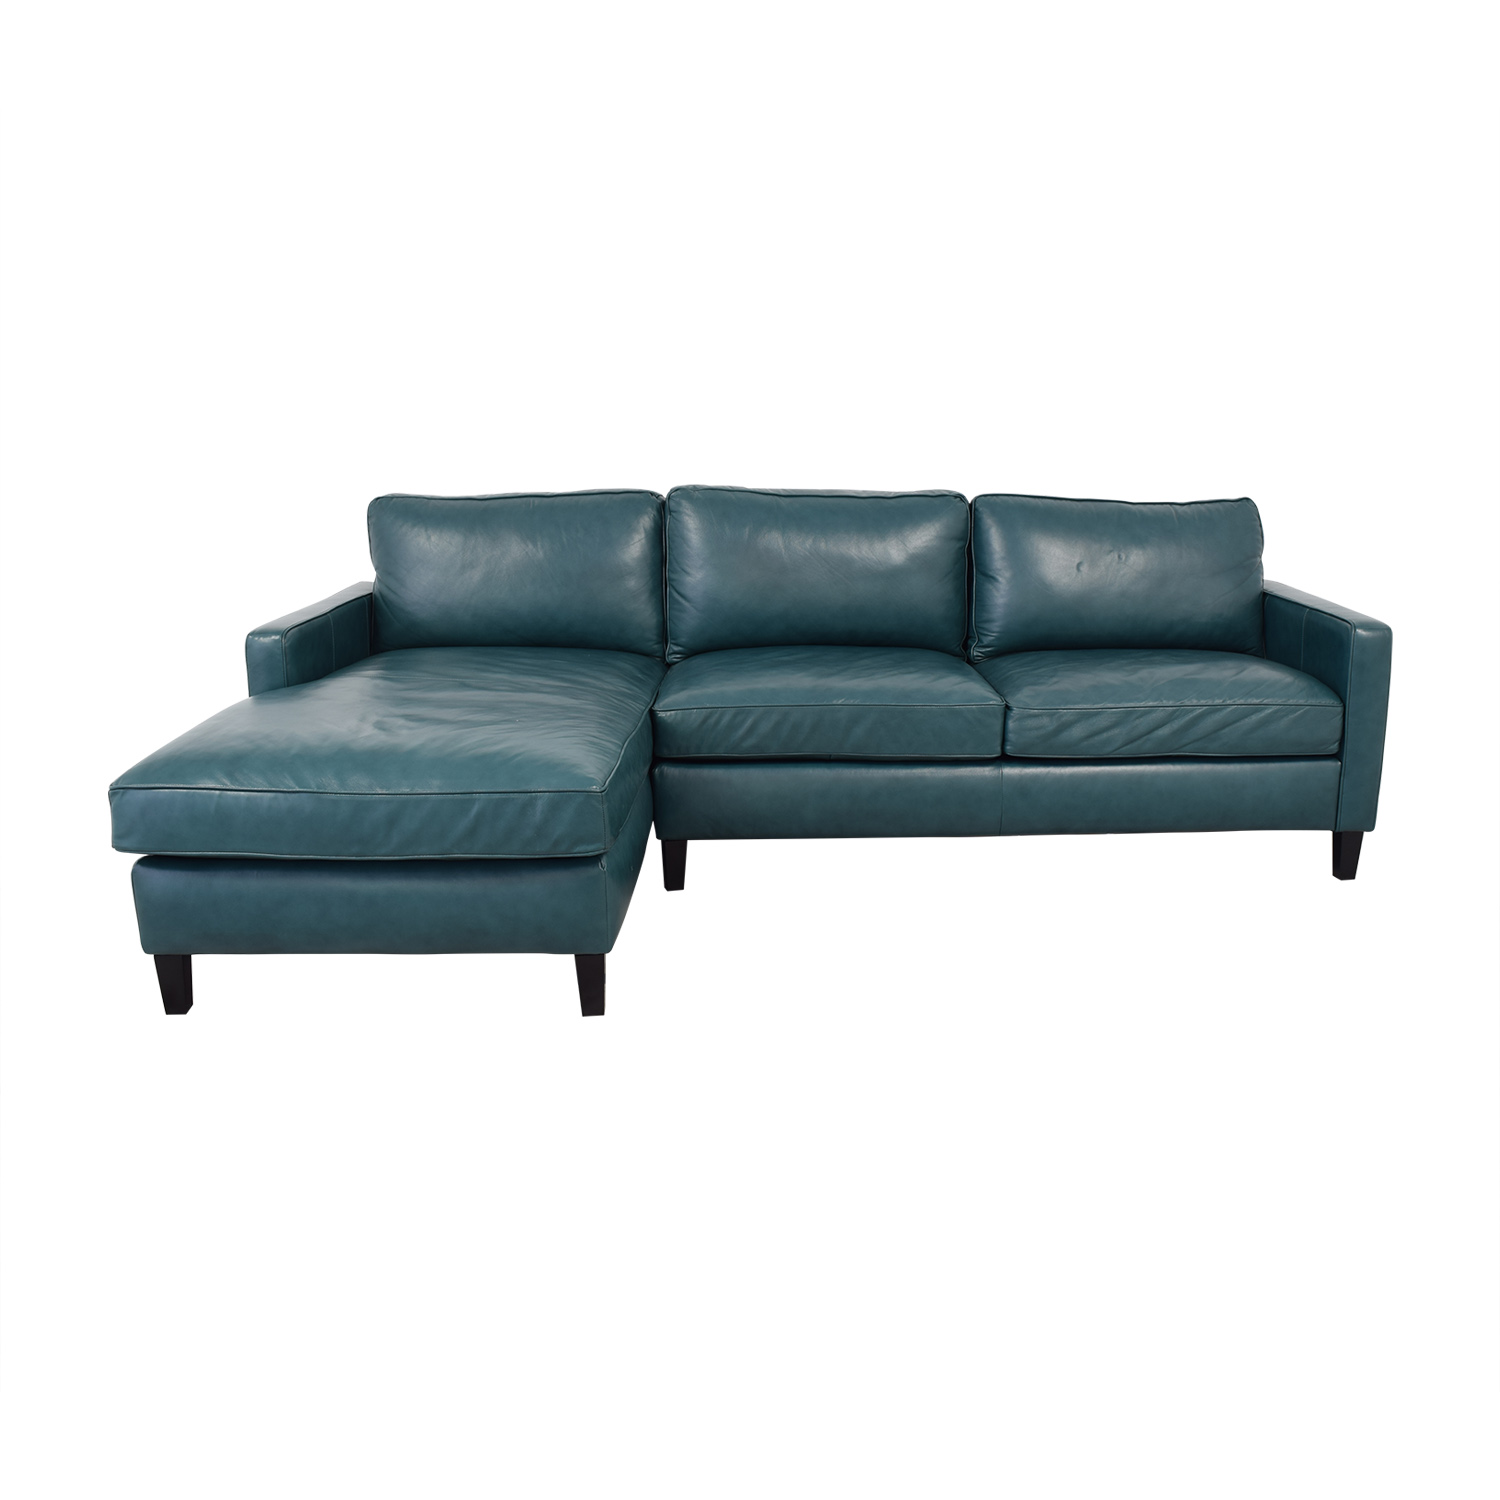 76% OFF - Brayden Studio Brayden Studio Chaise Sectional Sofa / Sofas